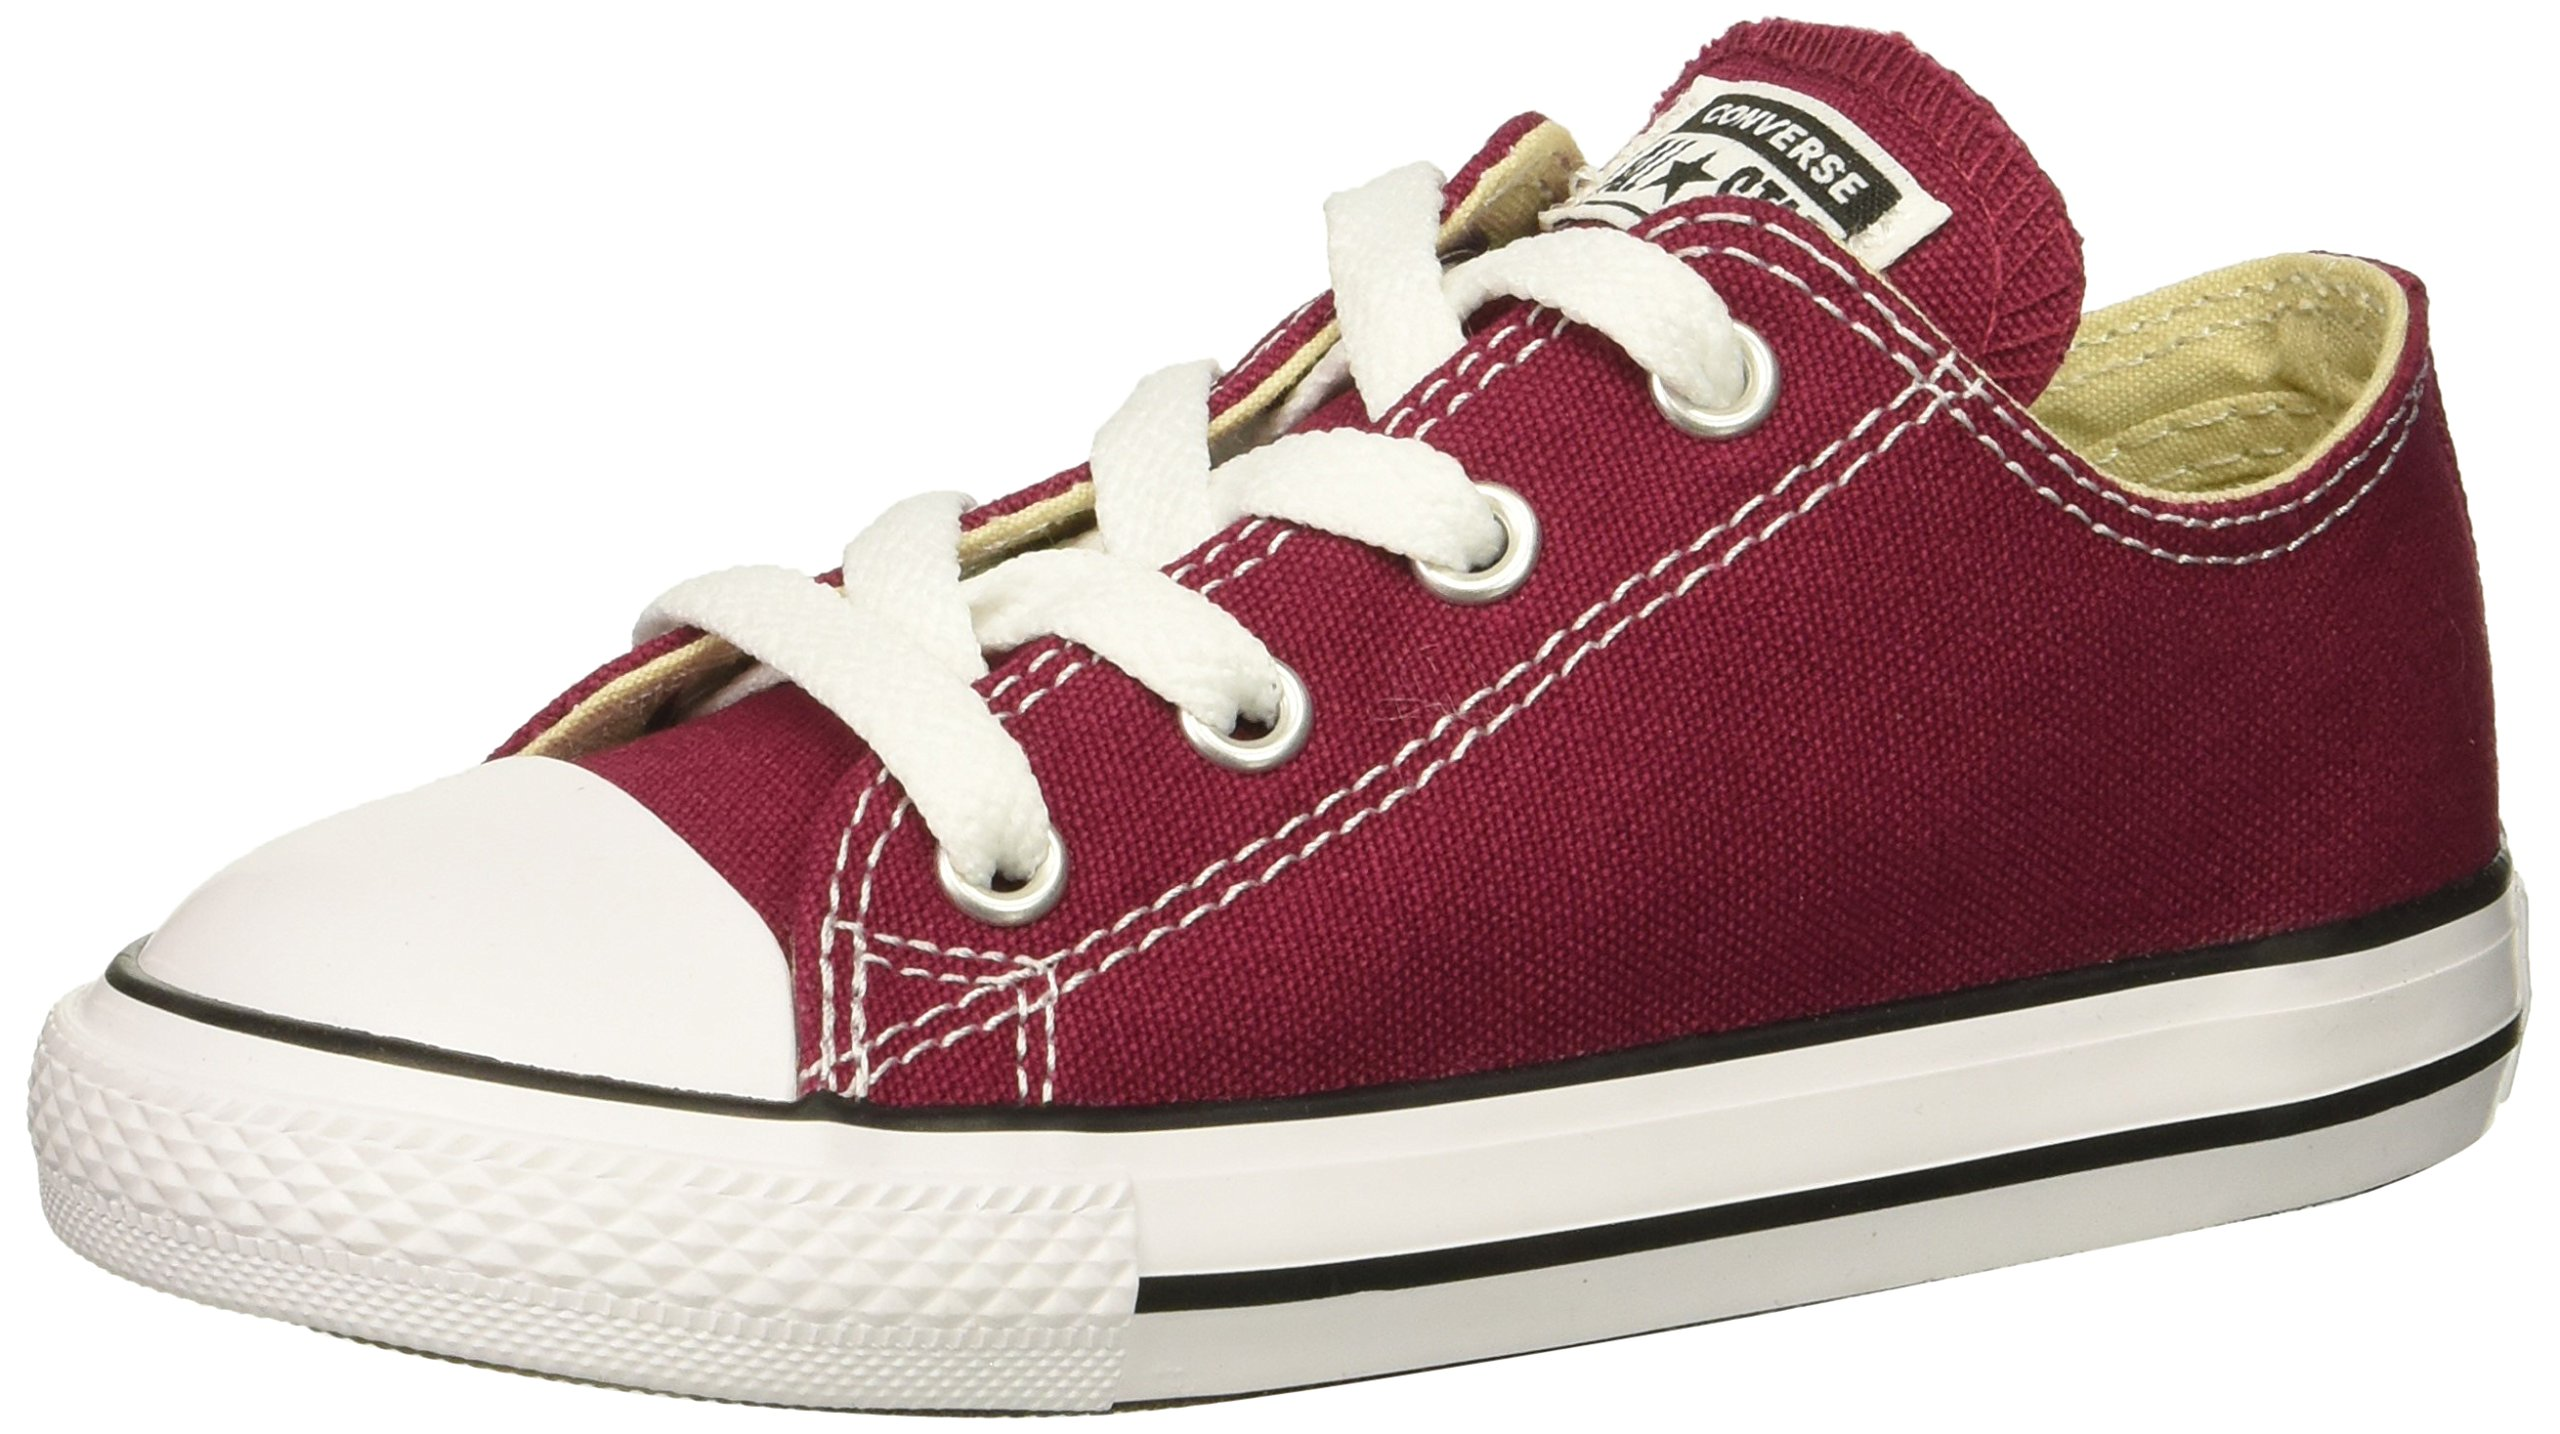 Converse Girls' Chuck Taylor All Star 2018 Seasonal Low Top Sneaker, Maroon, 10 M US Toddler by Converse